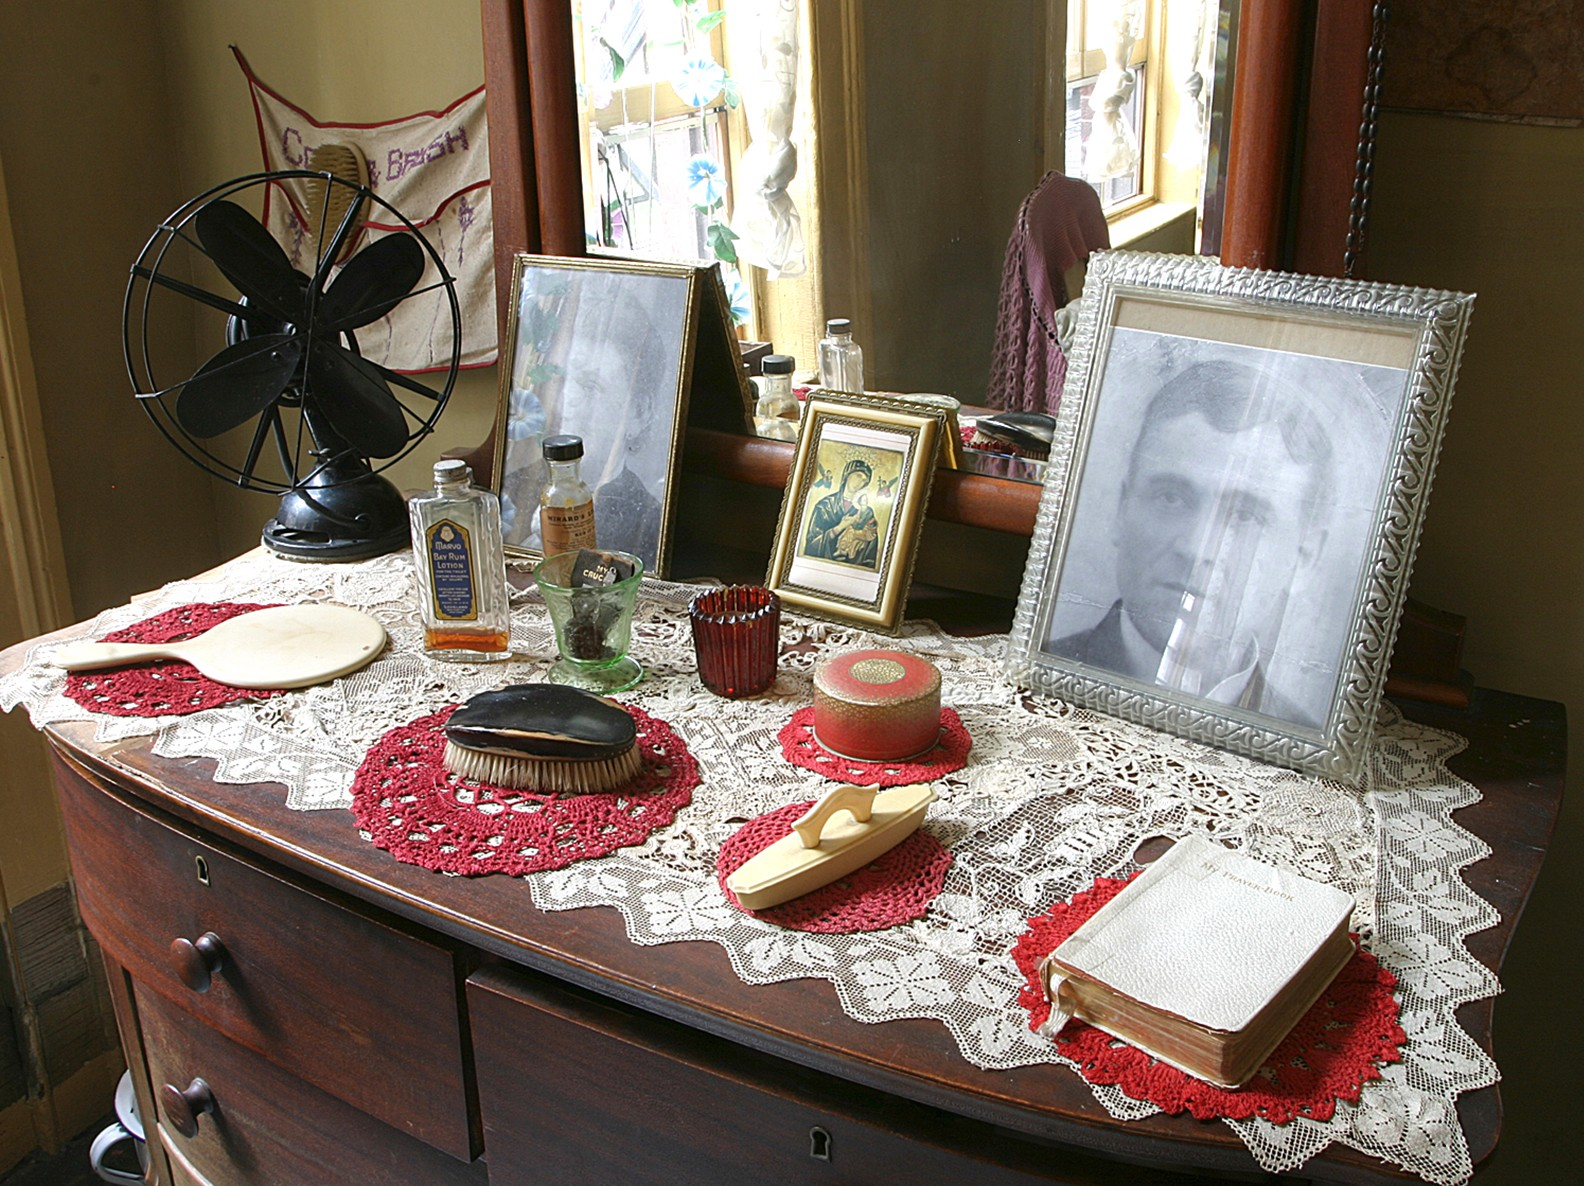 Objects and photos on a dressing table inside the recreated Baldizzi apartment